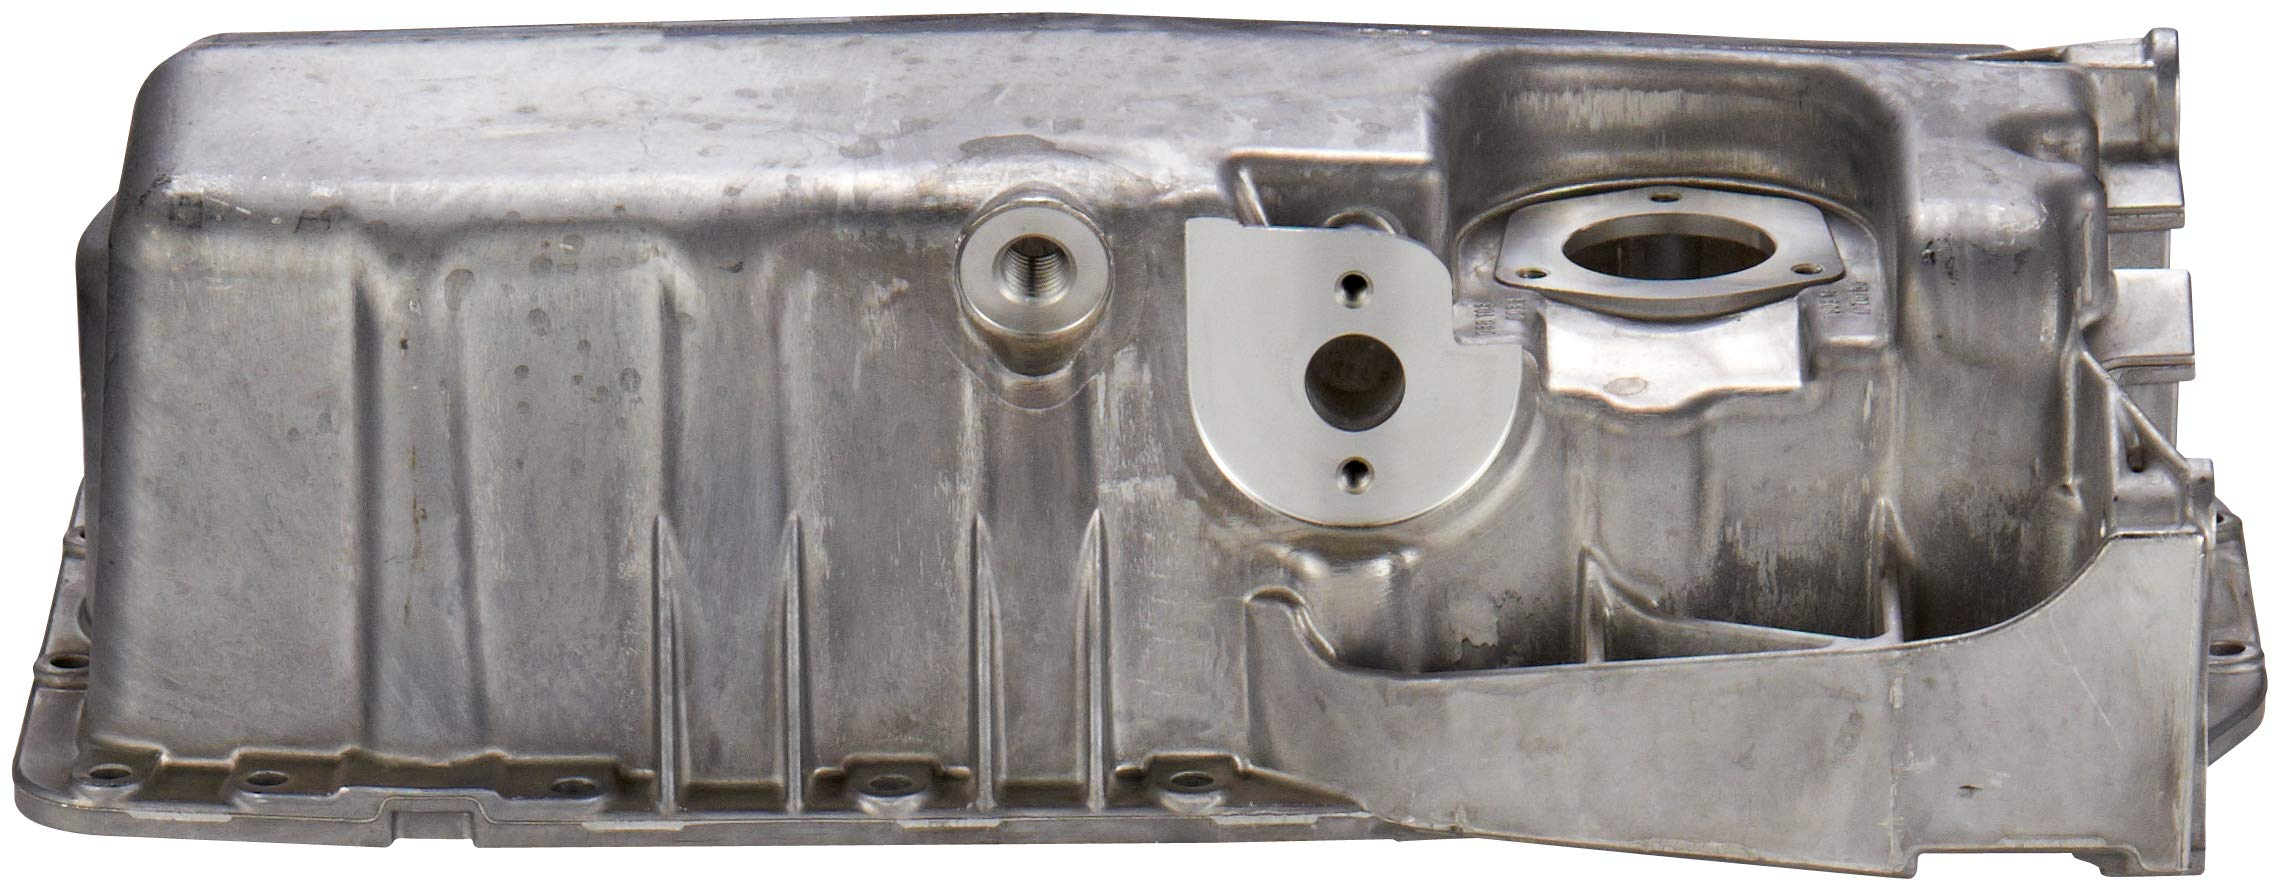 Spectra Premium VWP21A Engine Oil Pan by Spectra Premium